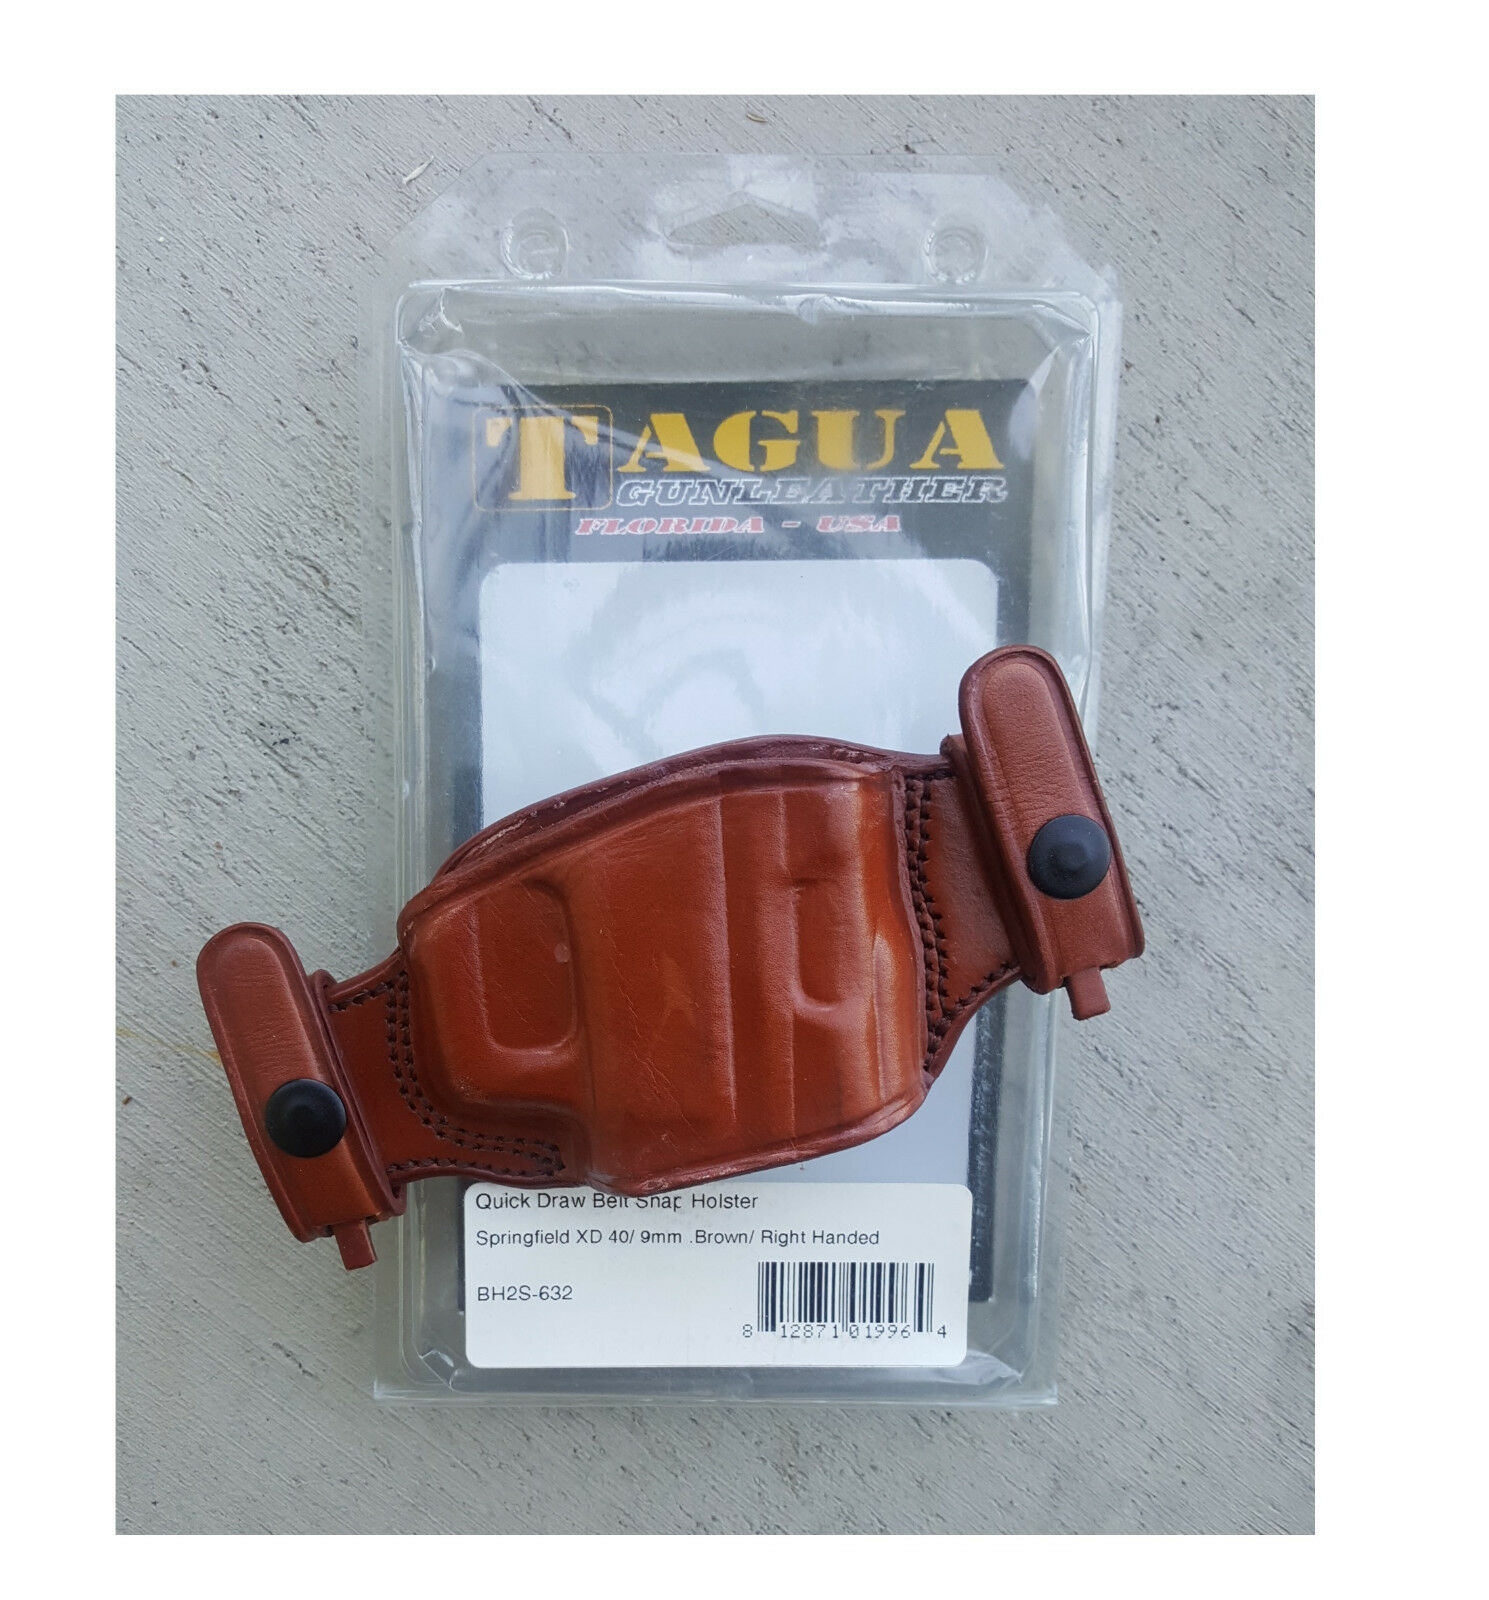 Tagua - Quick Draw Belt Snap Holster - # BH2S-632 - Brown - RH - See Fit  Below